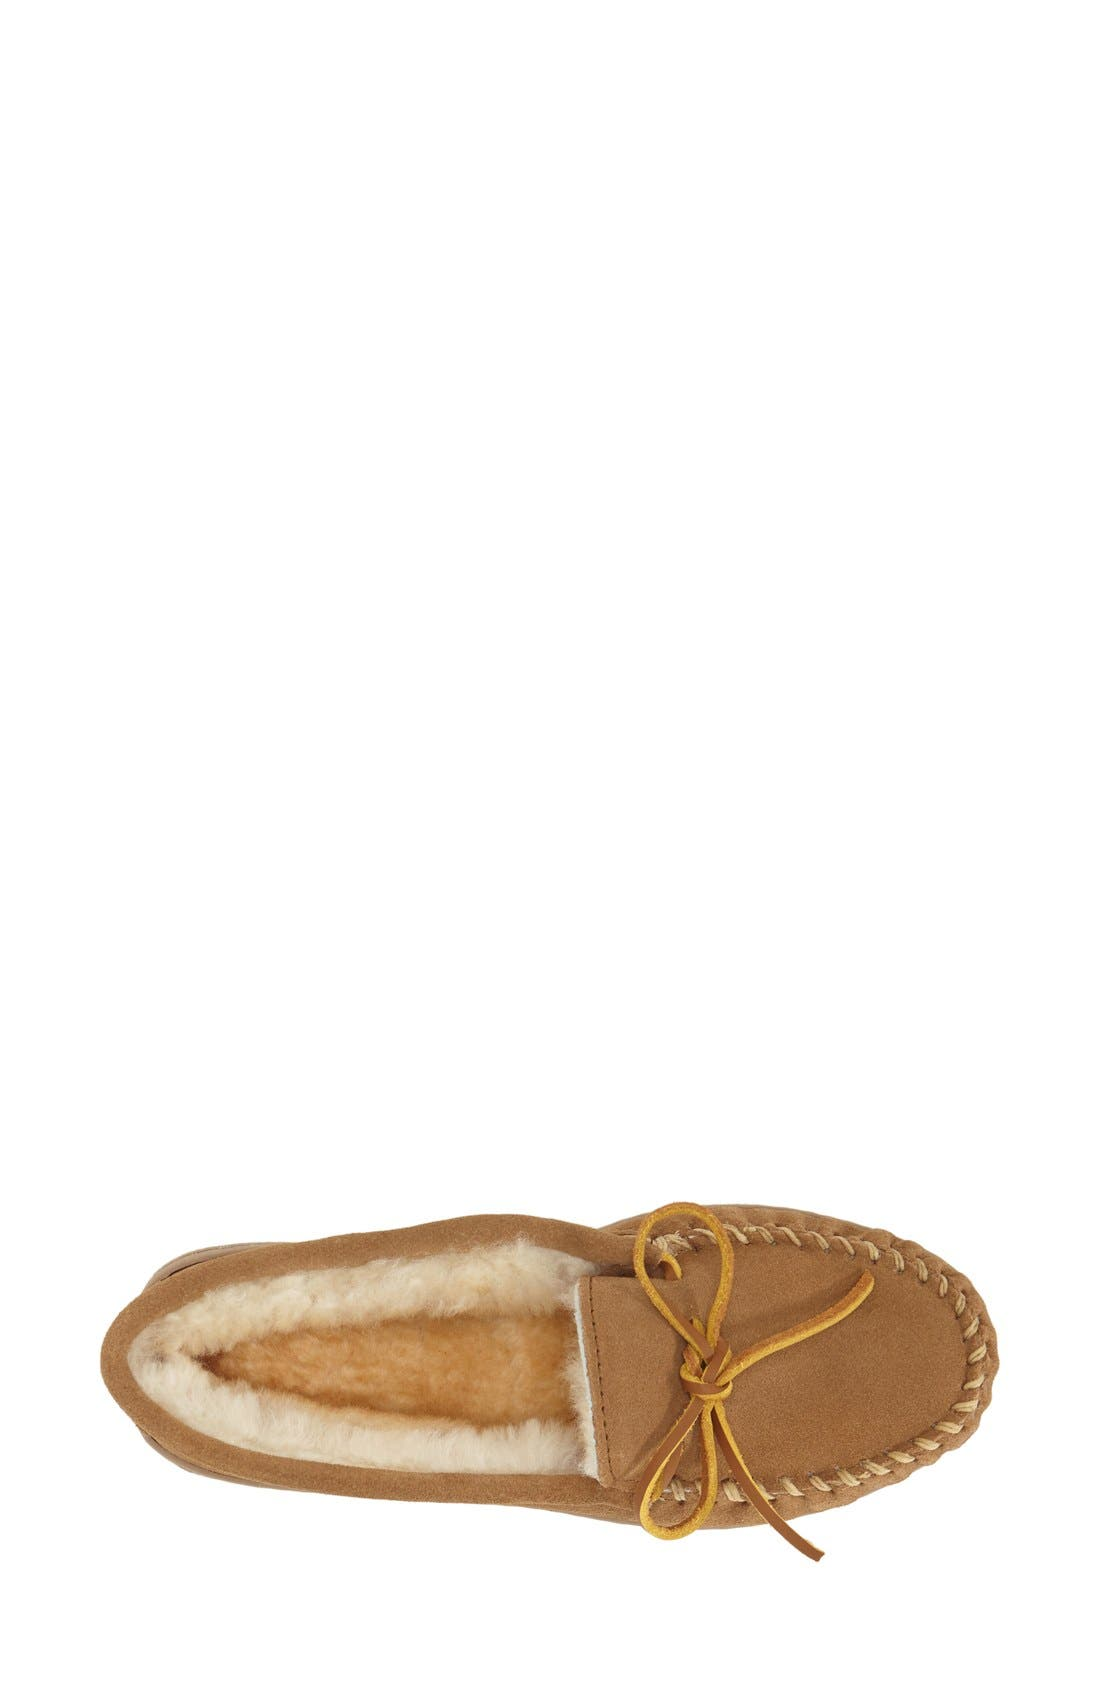 Sheepskin Hard Sole Moccasin Slipper,                             Alternate thumbnail 3, color,                             Tan Suede